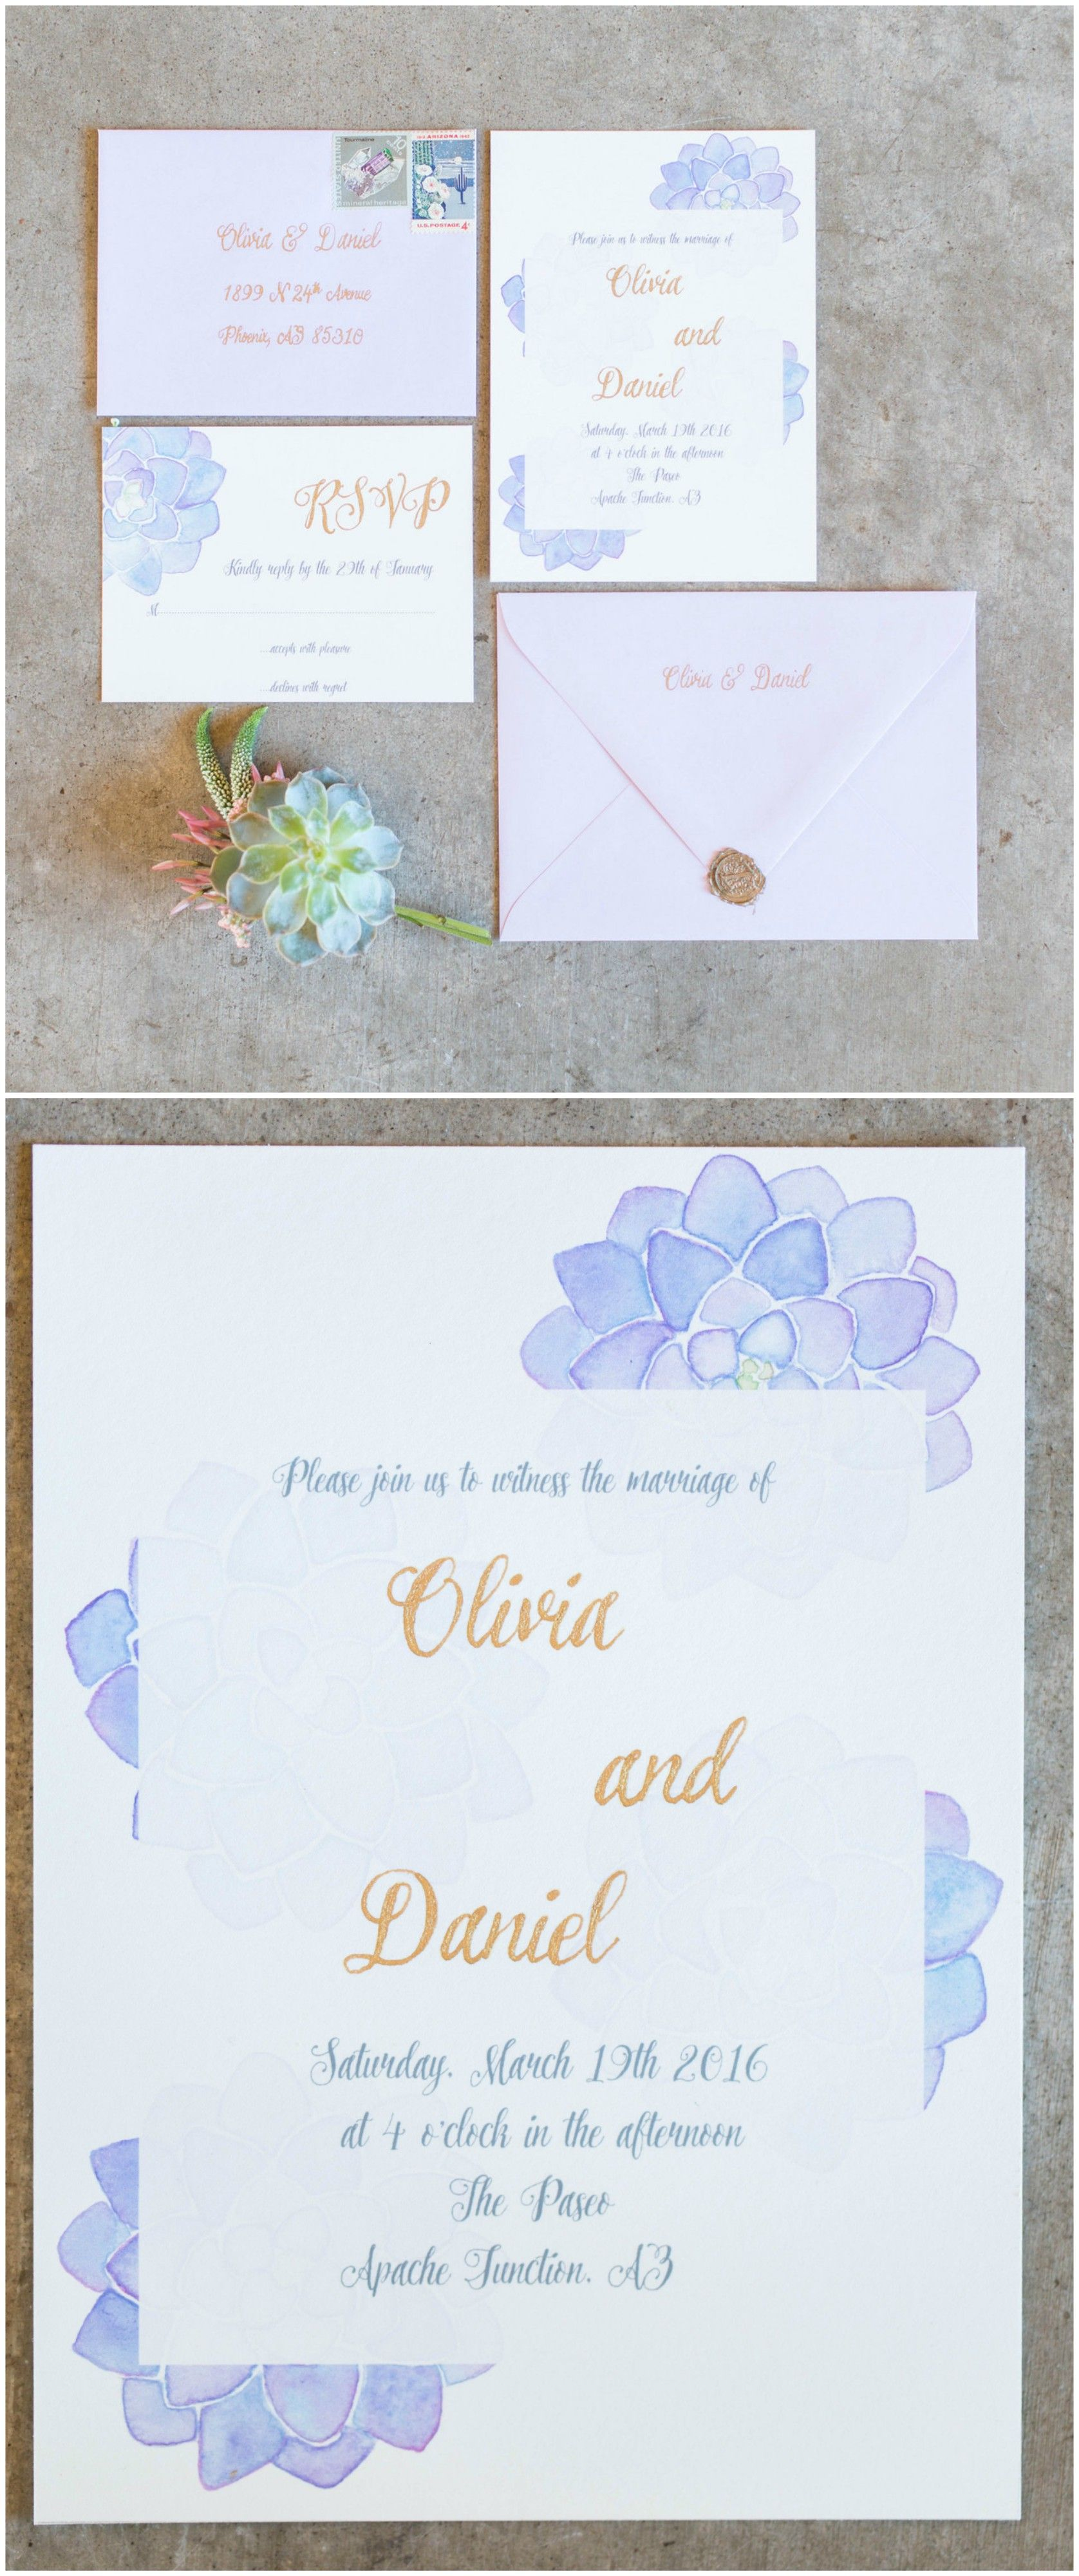 the smarter way to wed wedding pins invitation suite and wedding